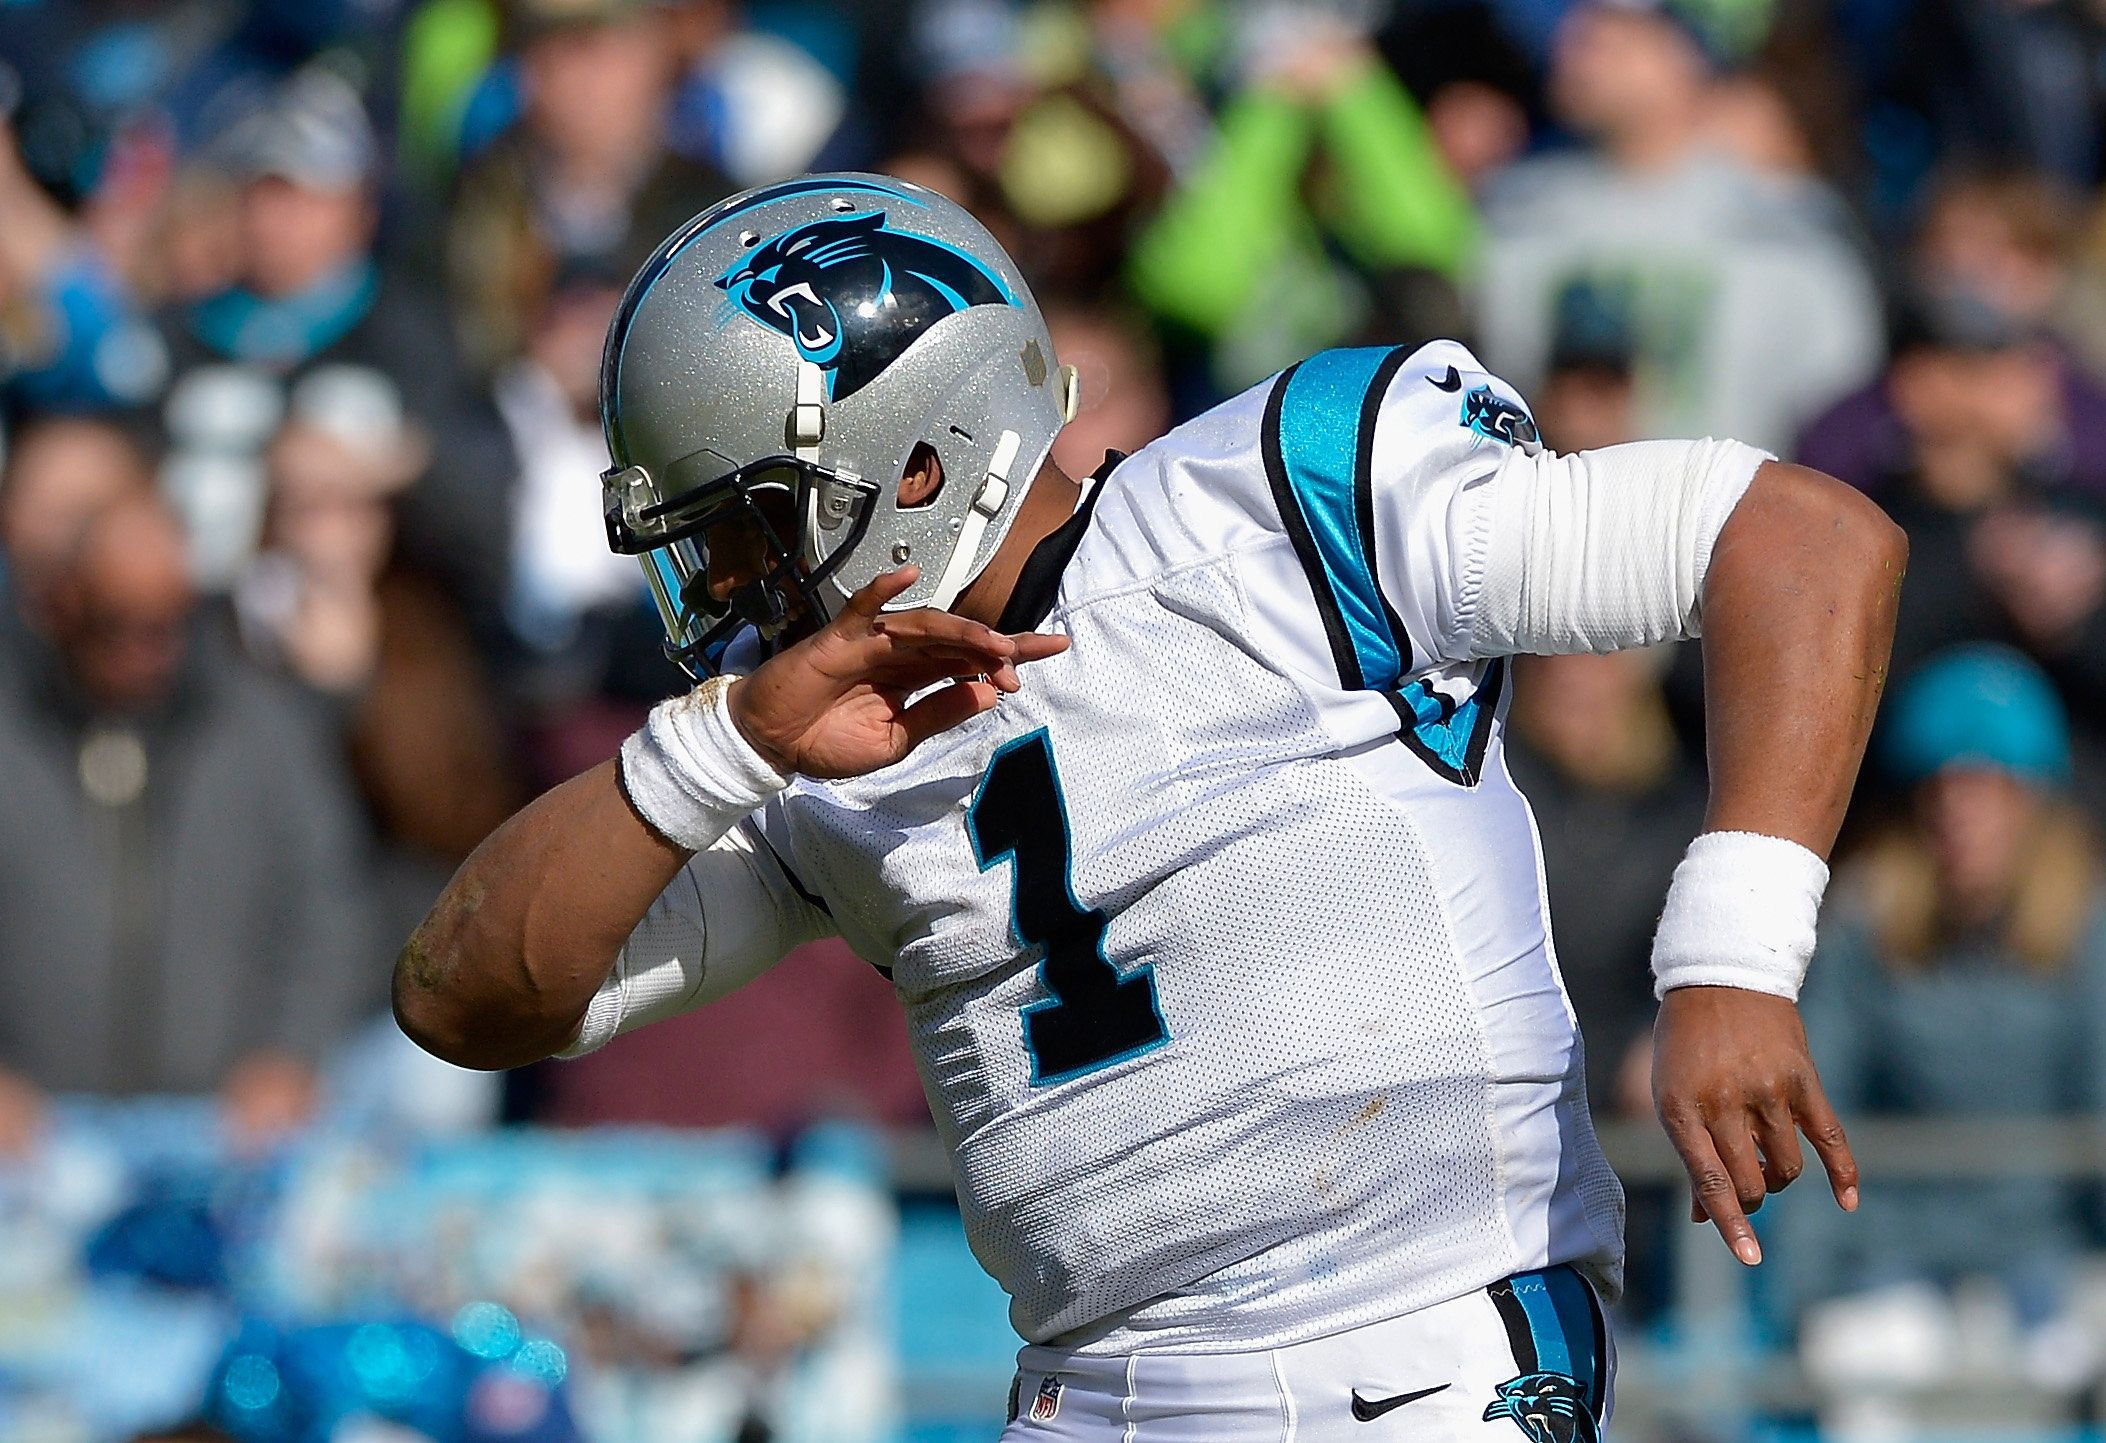 57598d2b1500002a00739b1a?cache=saxqbknayz&ops=scalefit_720_noupscale cam newton officially declares 'the dab' dead huffpost